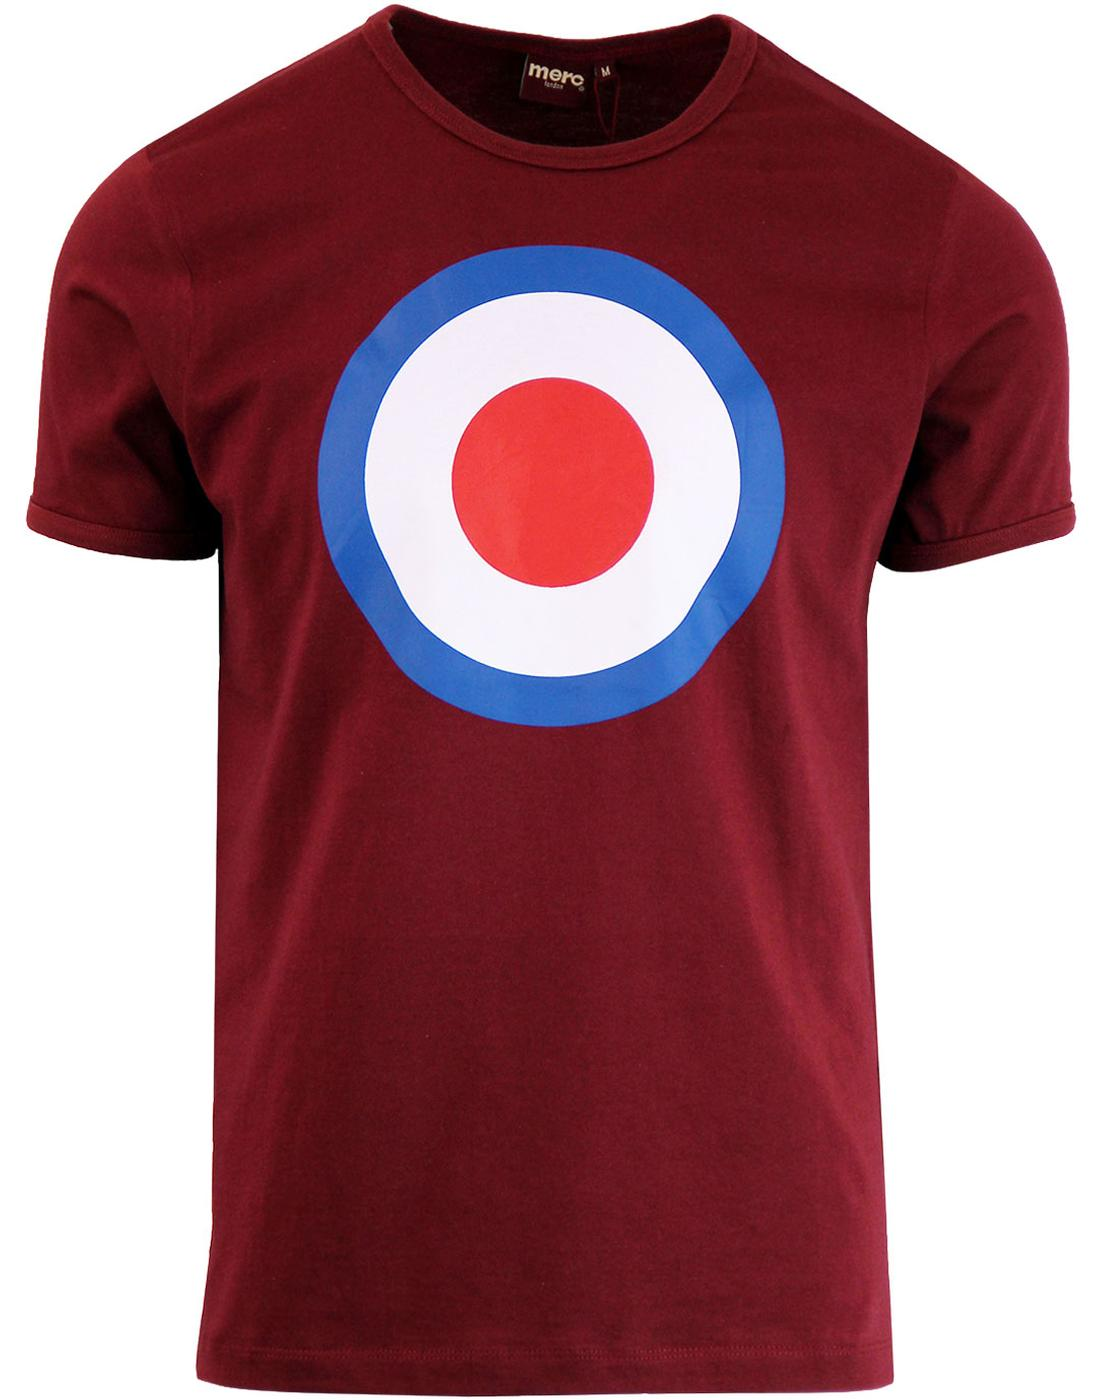 Ticket MERC Men's Mod Target Retro Pop Art Tee BU